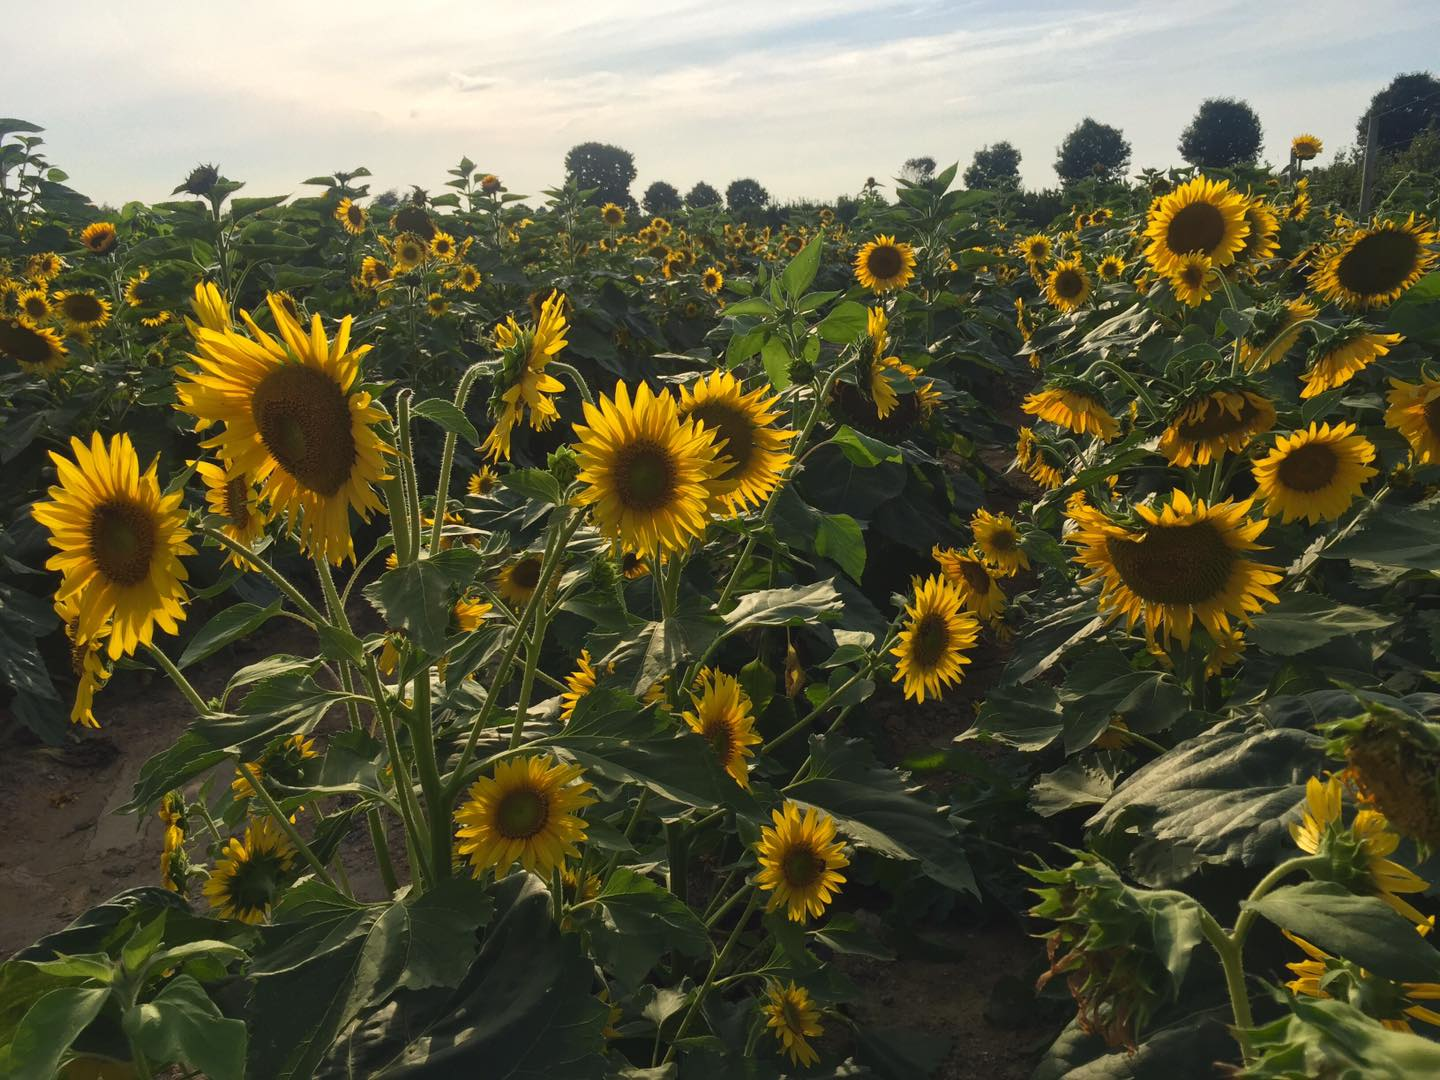 summer attractions showcasing a field of sunflowers from Grim's - flower picking and cut flowers